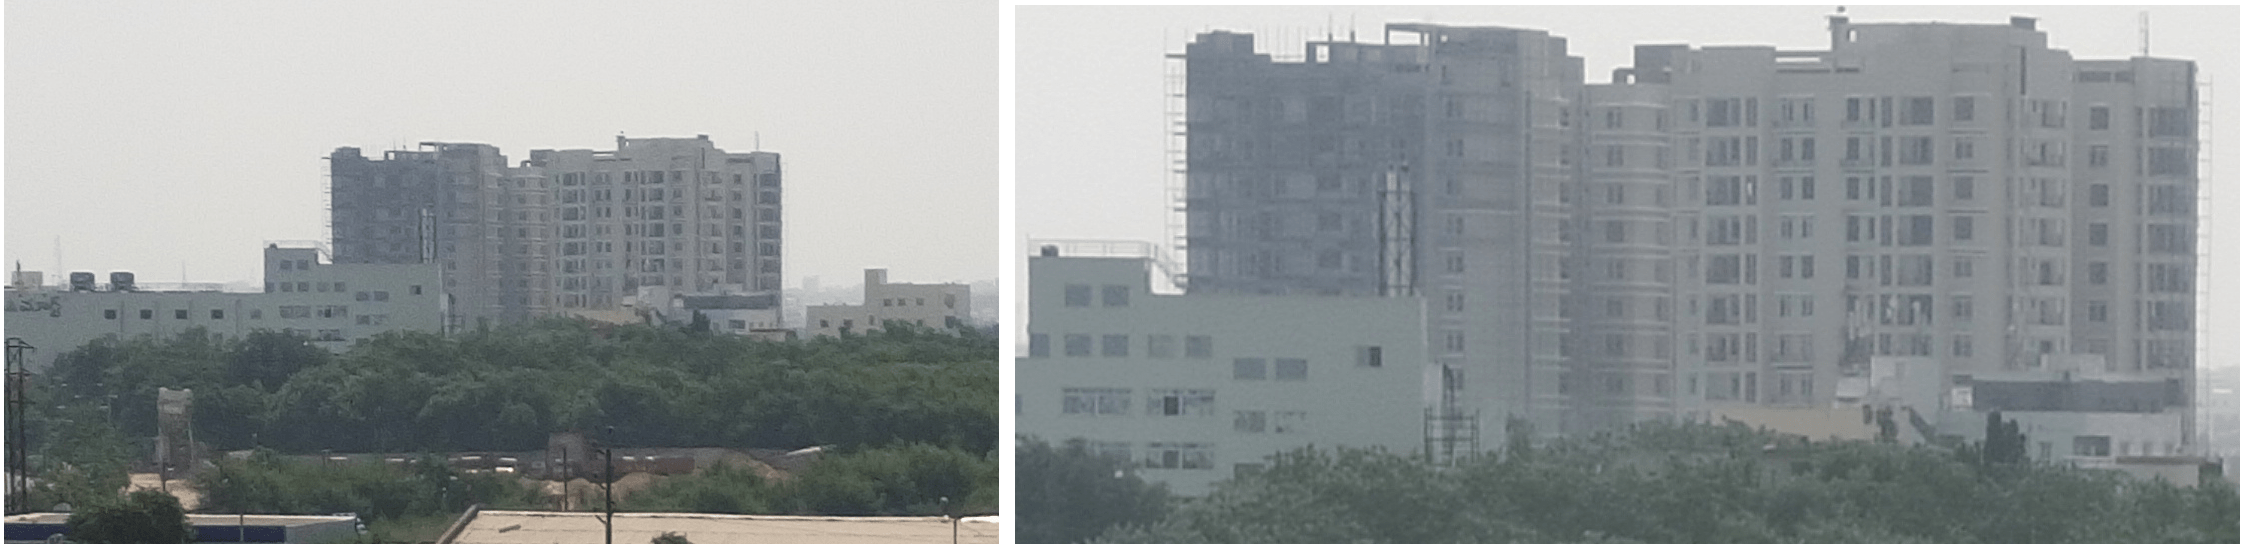 Gionee ELife E8 - Ultra Pixel Vs Normal Mode